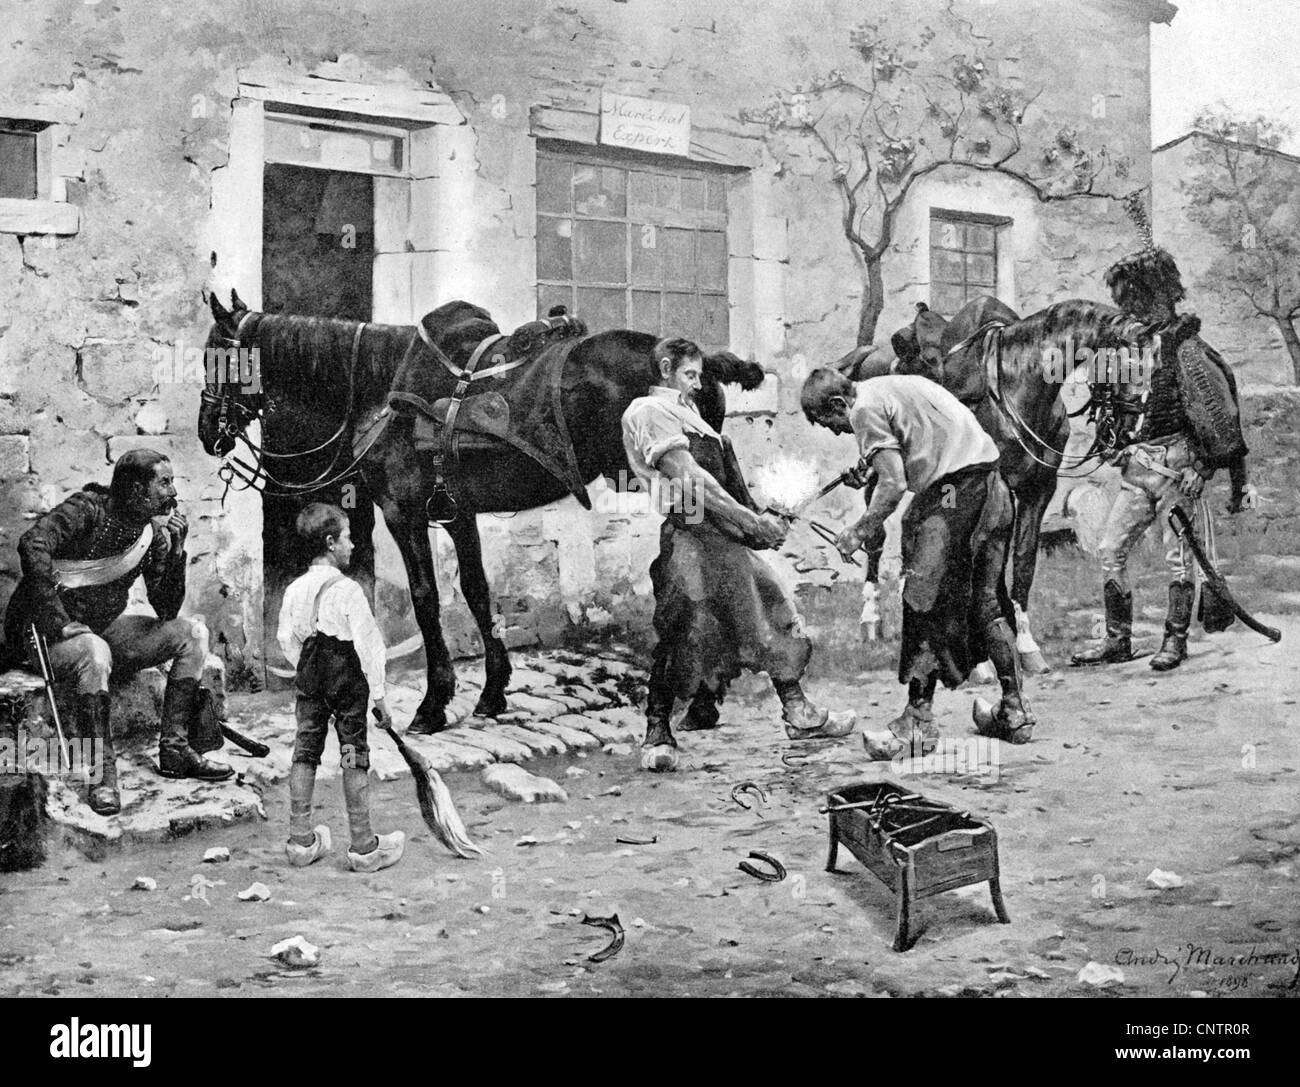 military, France, cavalry, hussars having a horse shoed, circa 1810, print after painting by Andre Marchand, 1898, - Stock Image